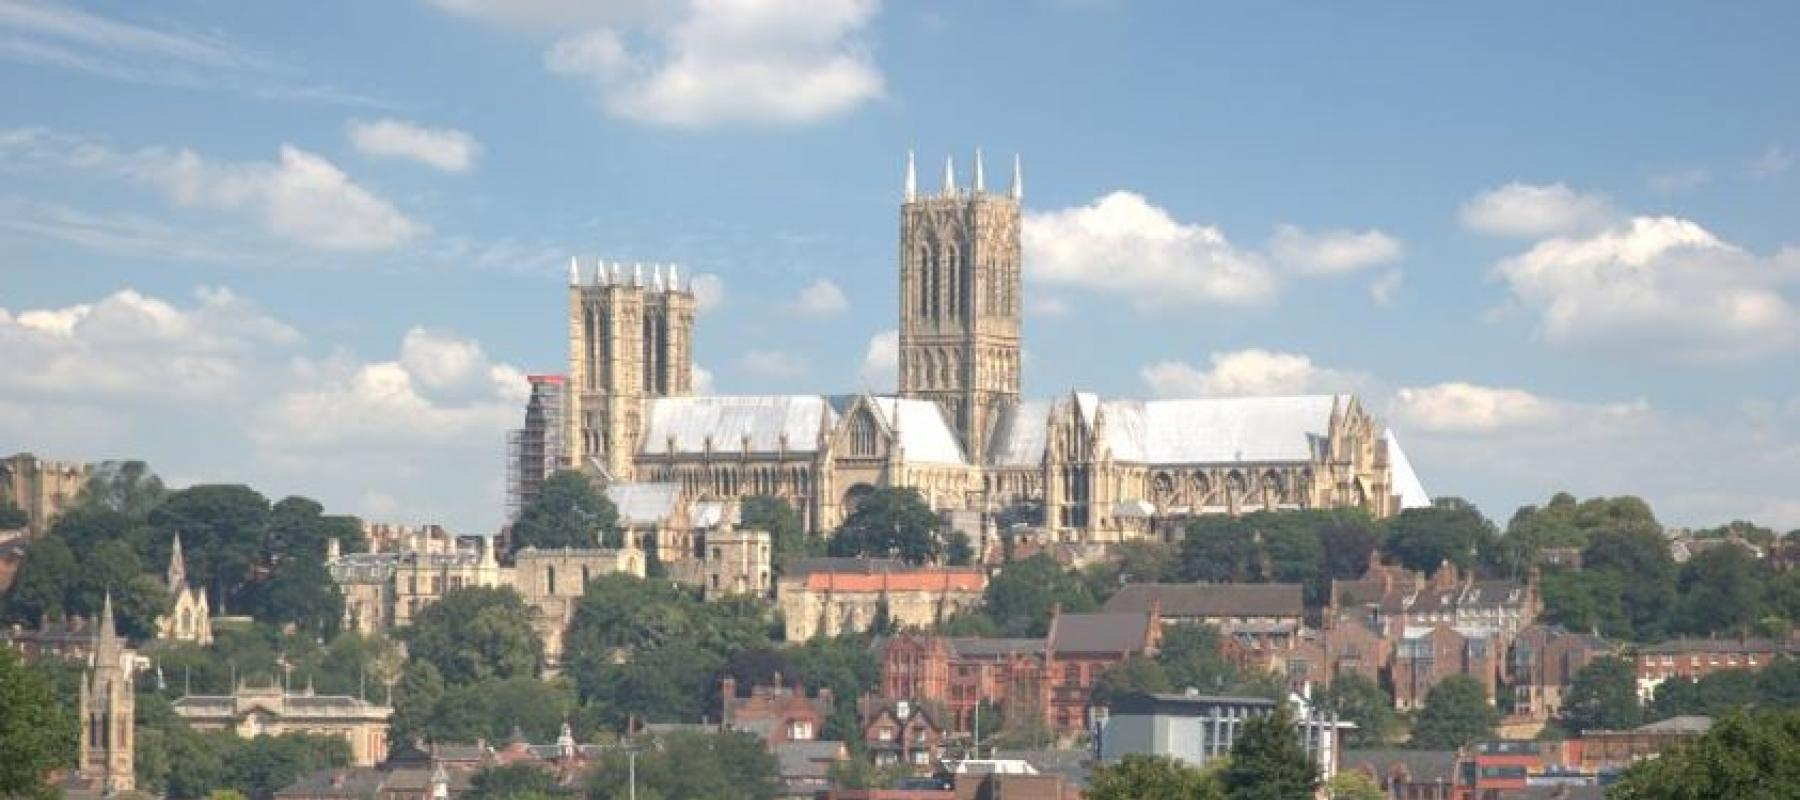 THe impressive Lincoln Cathedral